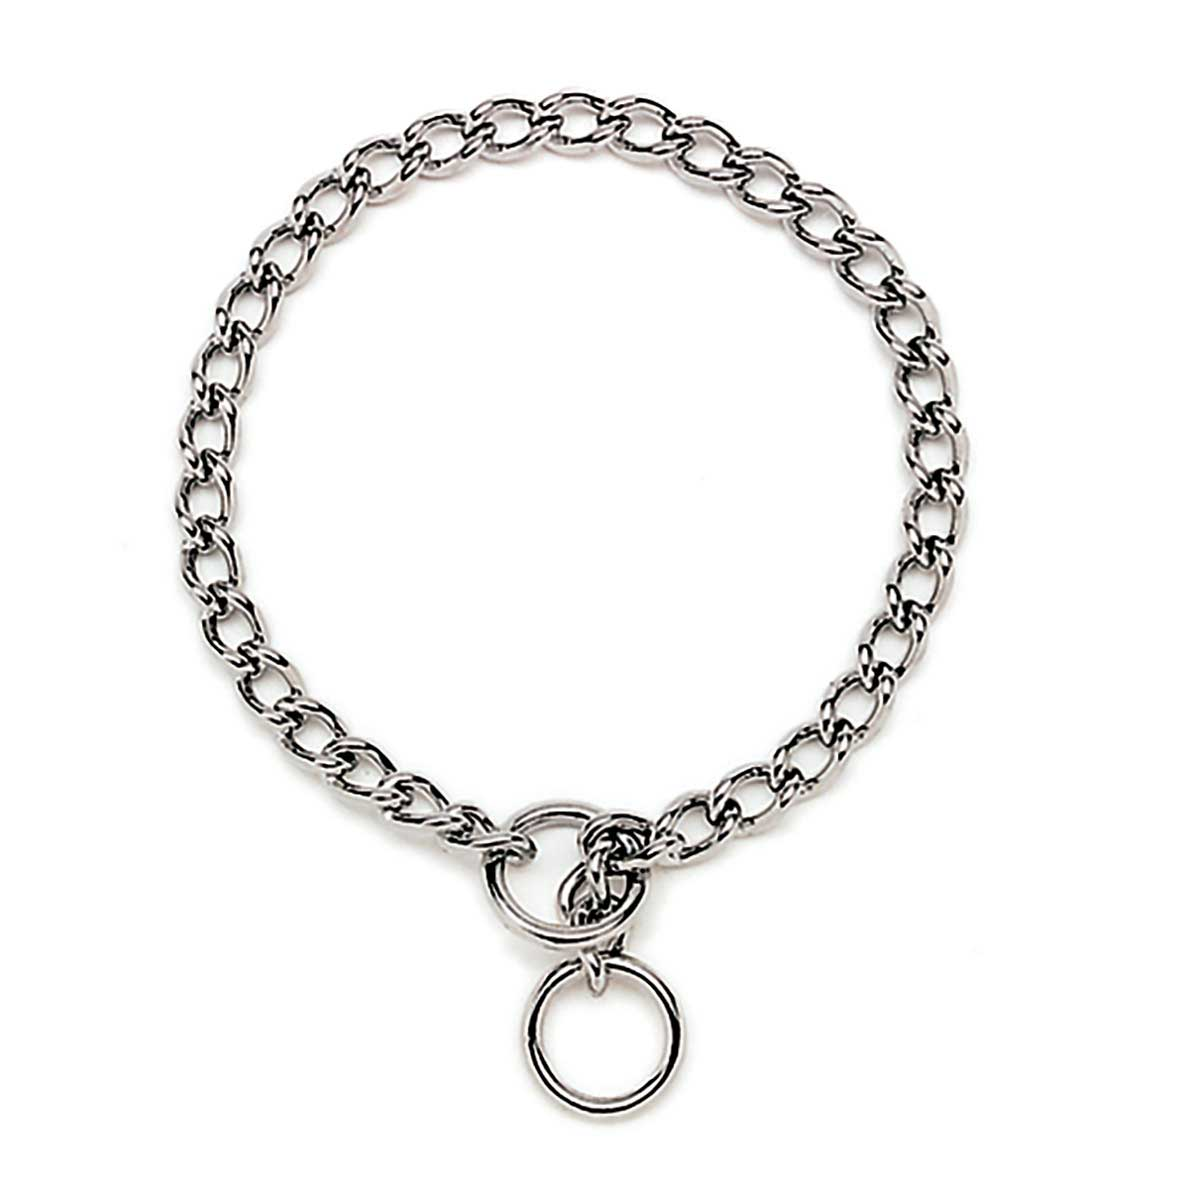 Coastal Fine Choke Chain for Dogs - 2.0mm